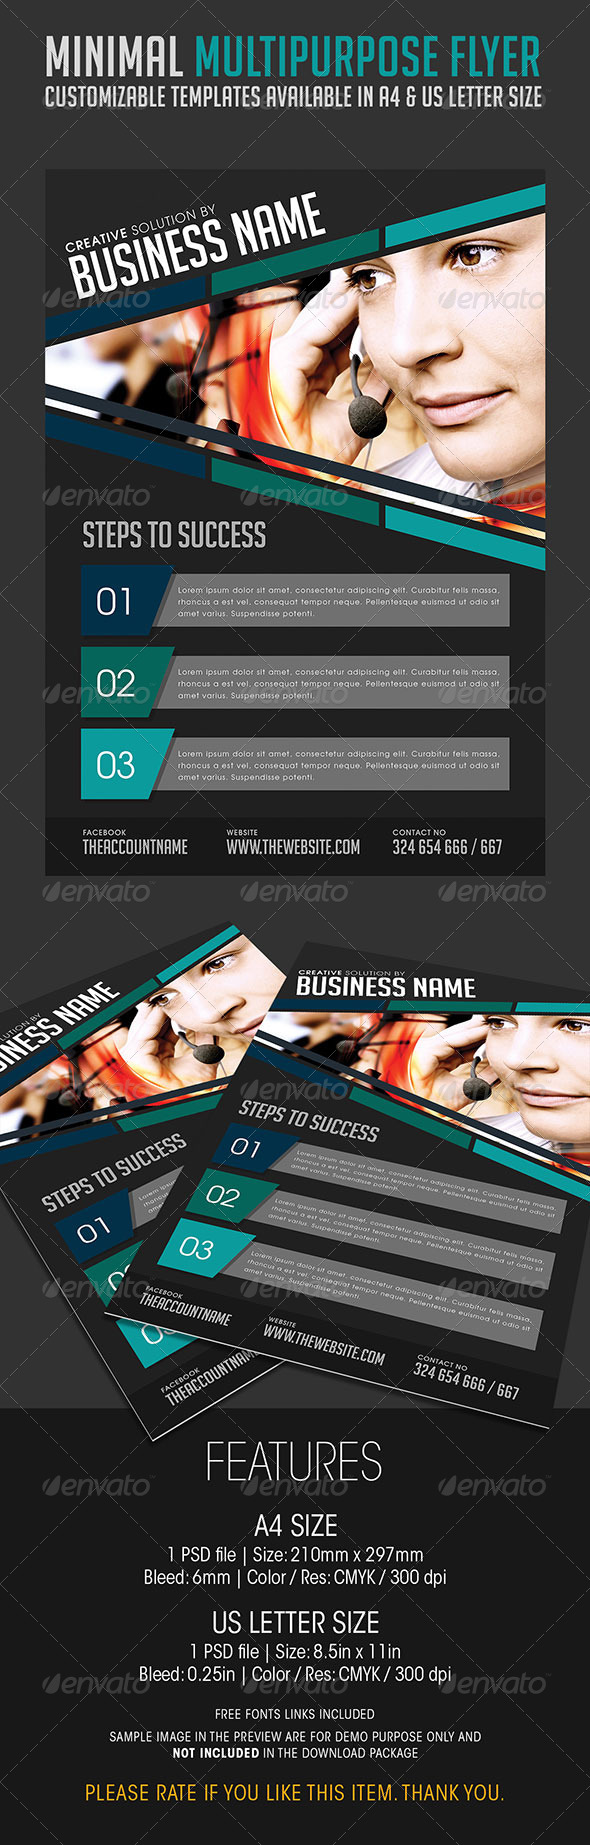 GraphicRiver Minimal Multipurpose Flyer 02 6735725